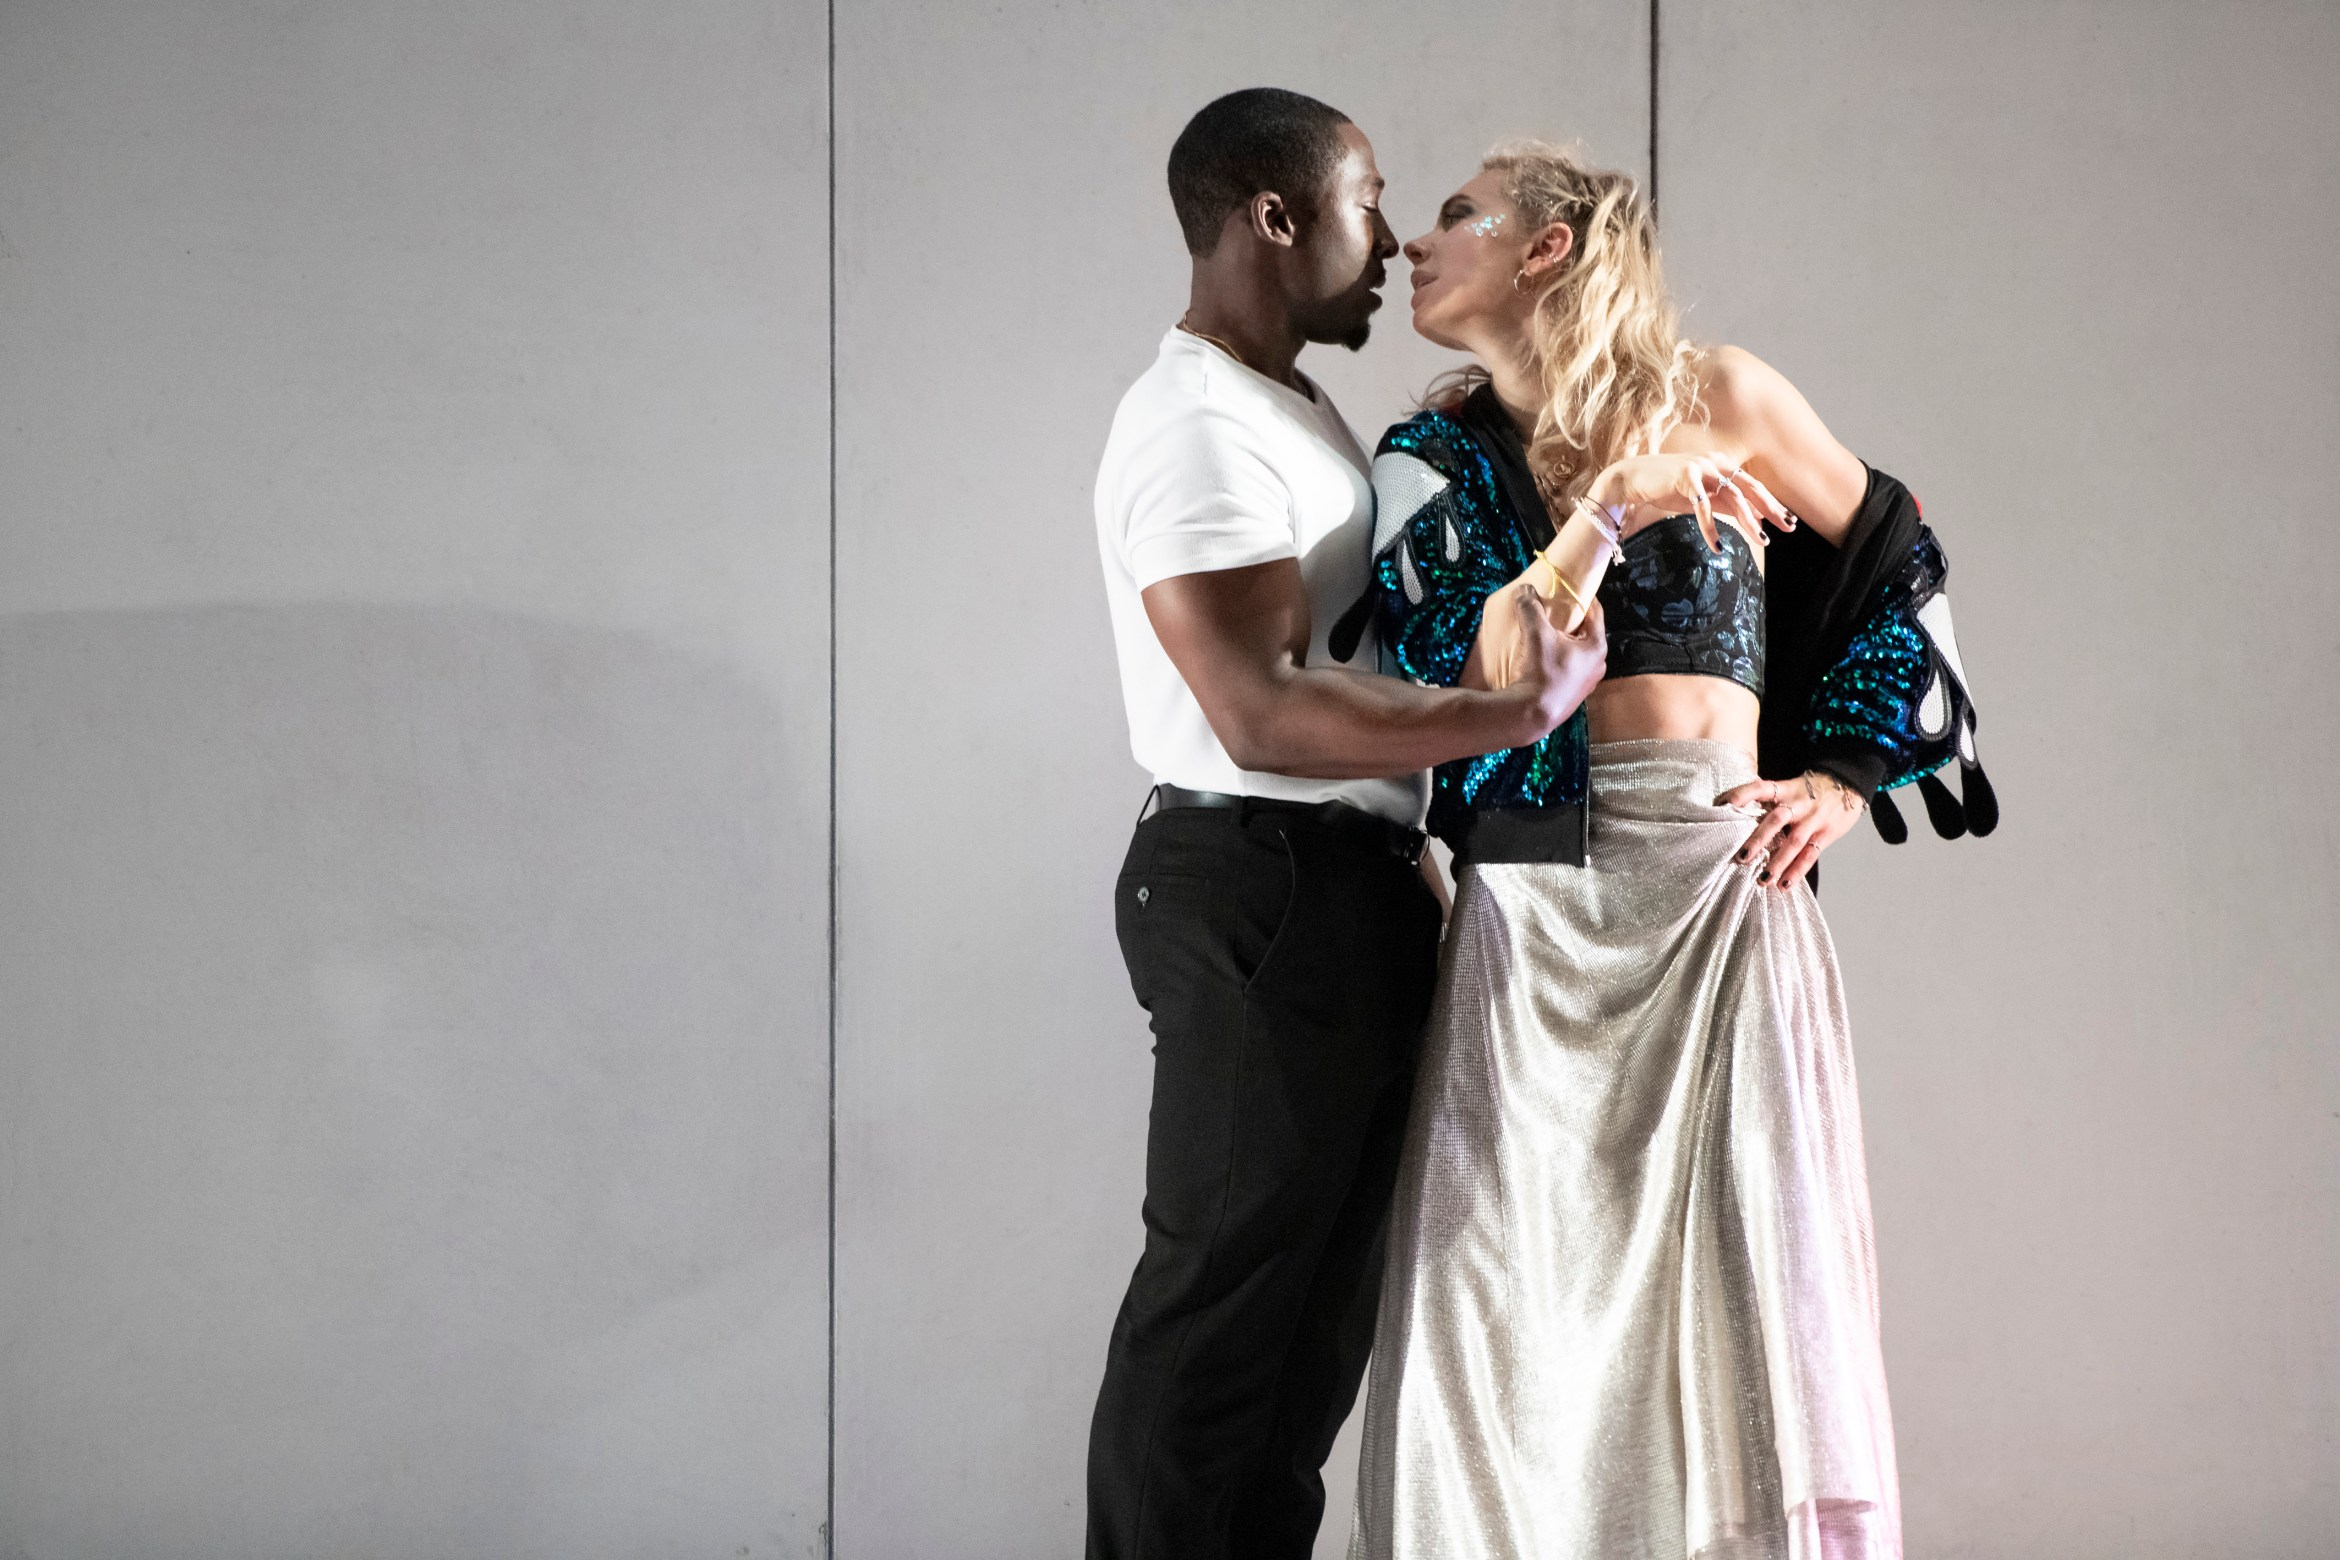 3458 Vanessa Kirby as Julie and Eric Kofi Abrefa as Jean in Julie at the National Theatre (c) Richard H Smith.jpg